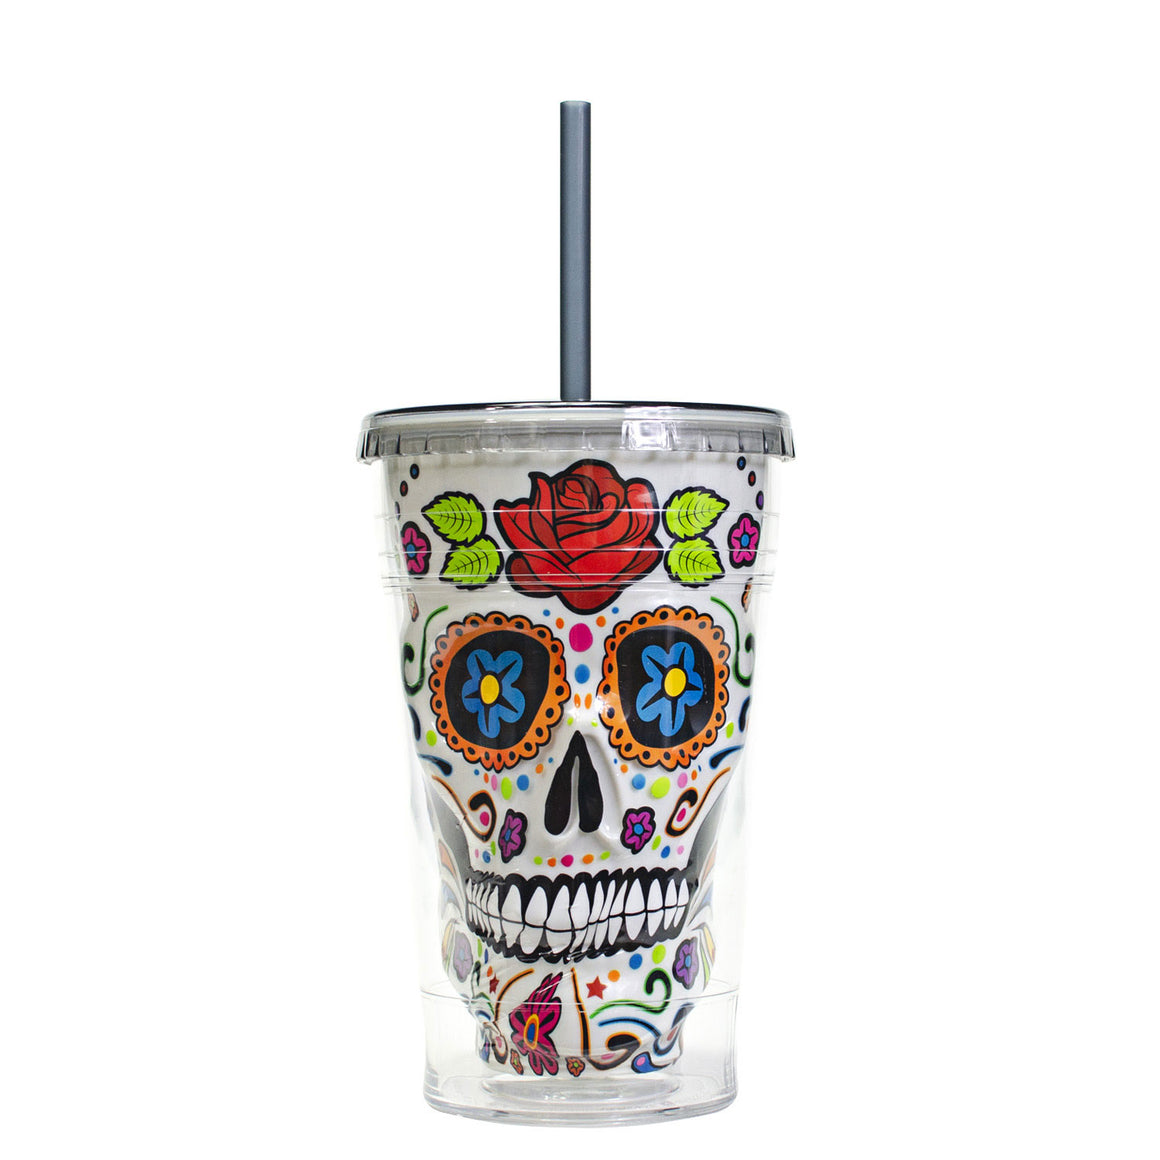 White / Rose 18 Oz Sugar Skull Halloween Chiller at Cool Gear Halloween